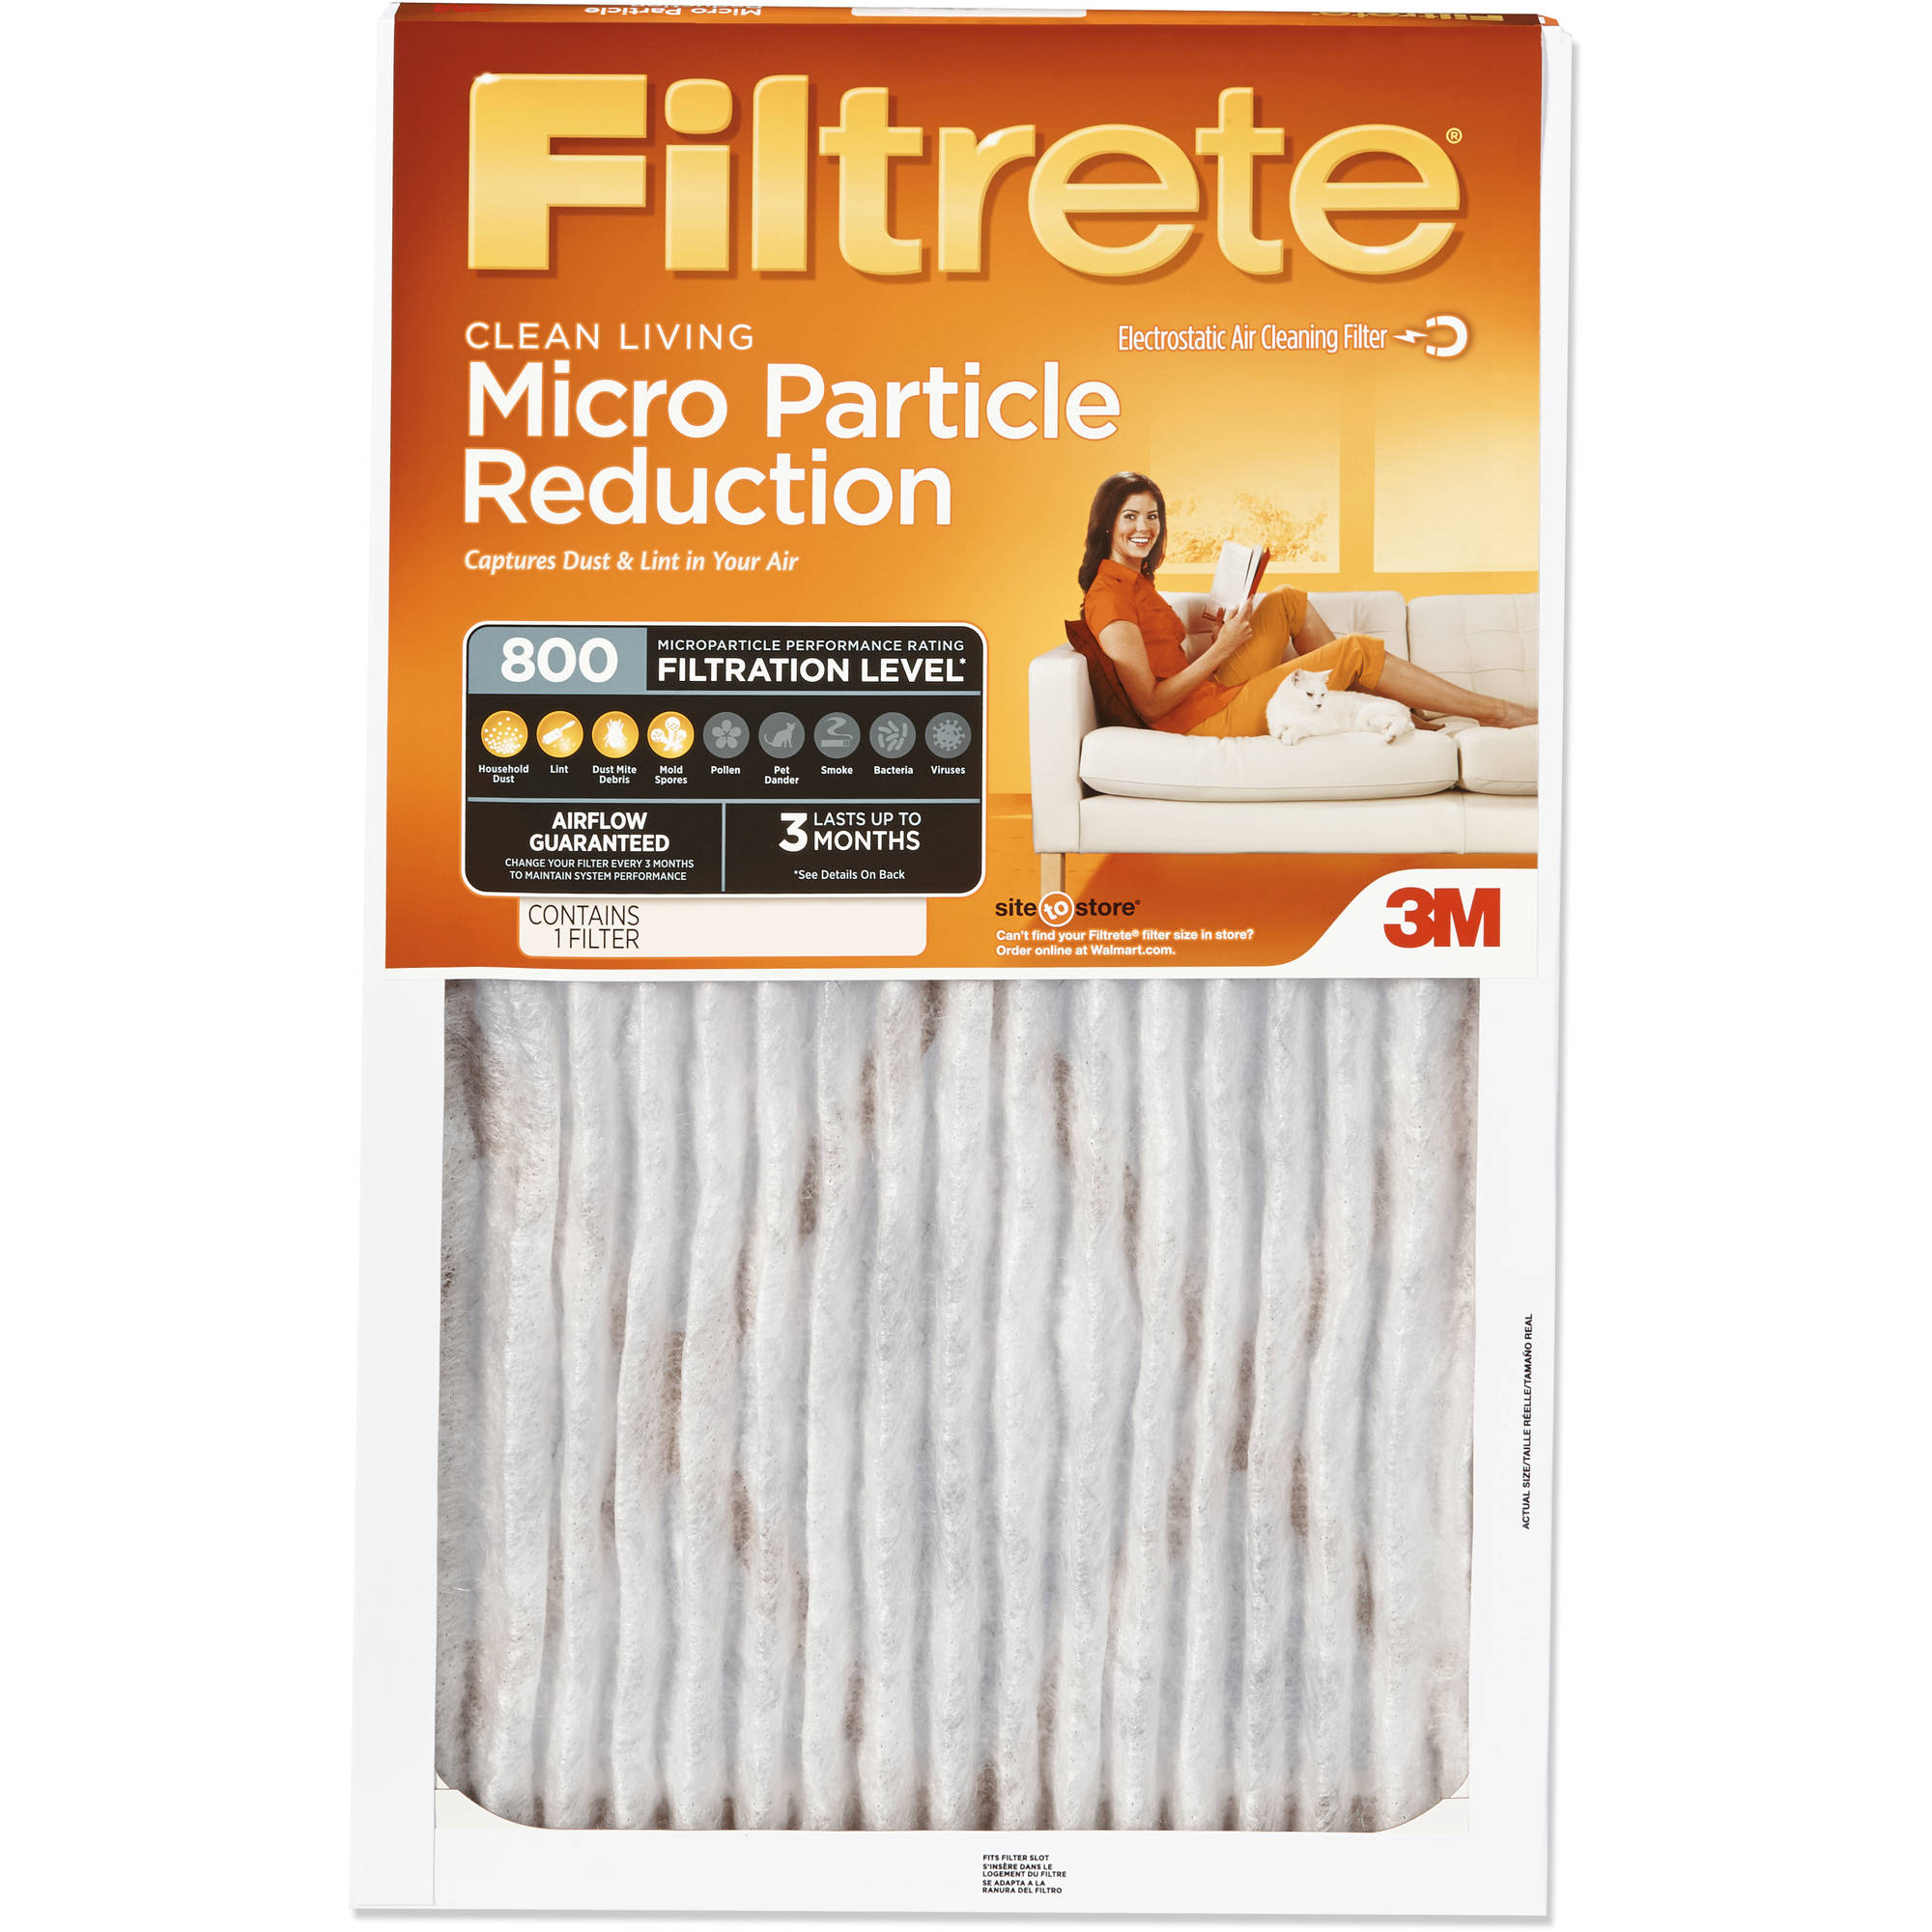 Filtrete Allergen Defense Micro Particle Reduction HVAC Furnace Air Filter, 800 MPR, 20 x 30 x 1 inch, 1 Filter